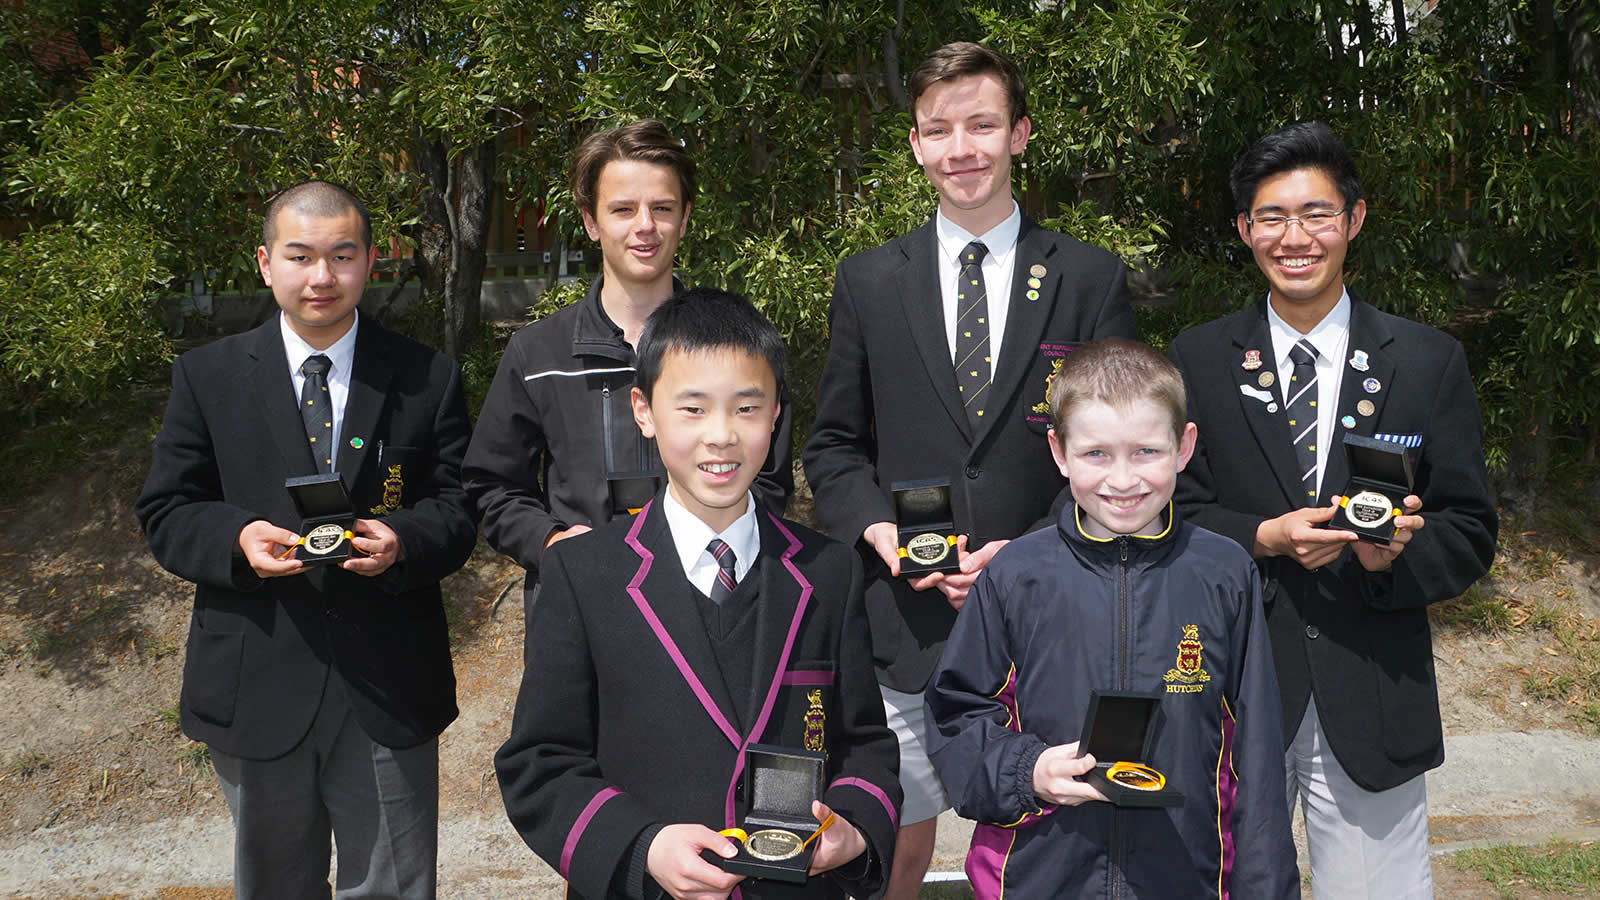 ICAS Mathematics Competition medal winners: Shenghong Zhu (Year 10), Axel Moore (Year 10) – absent, Angus Christie (Year 9), Malcom Ward (Year 11), Koh Kawaguchi (Year 12), Declan Ee (Year 7), William Rumley (Year 6).